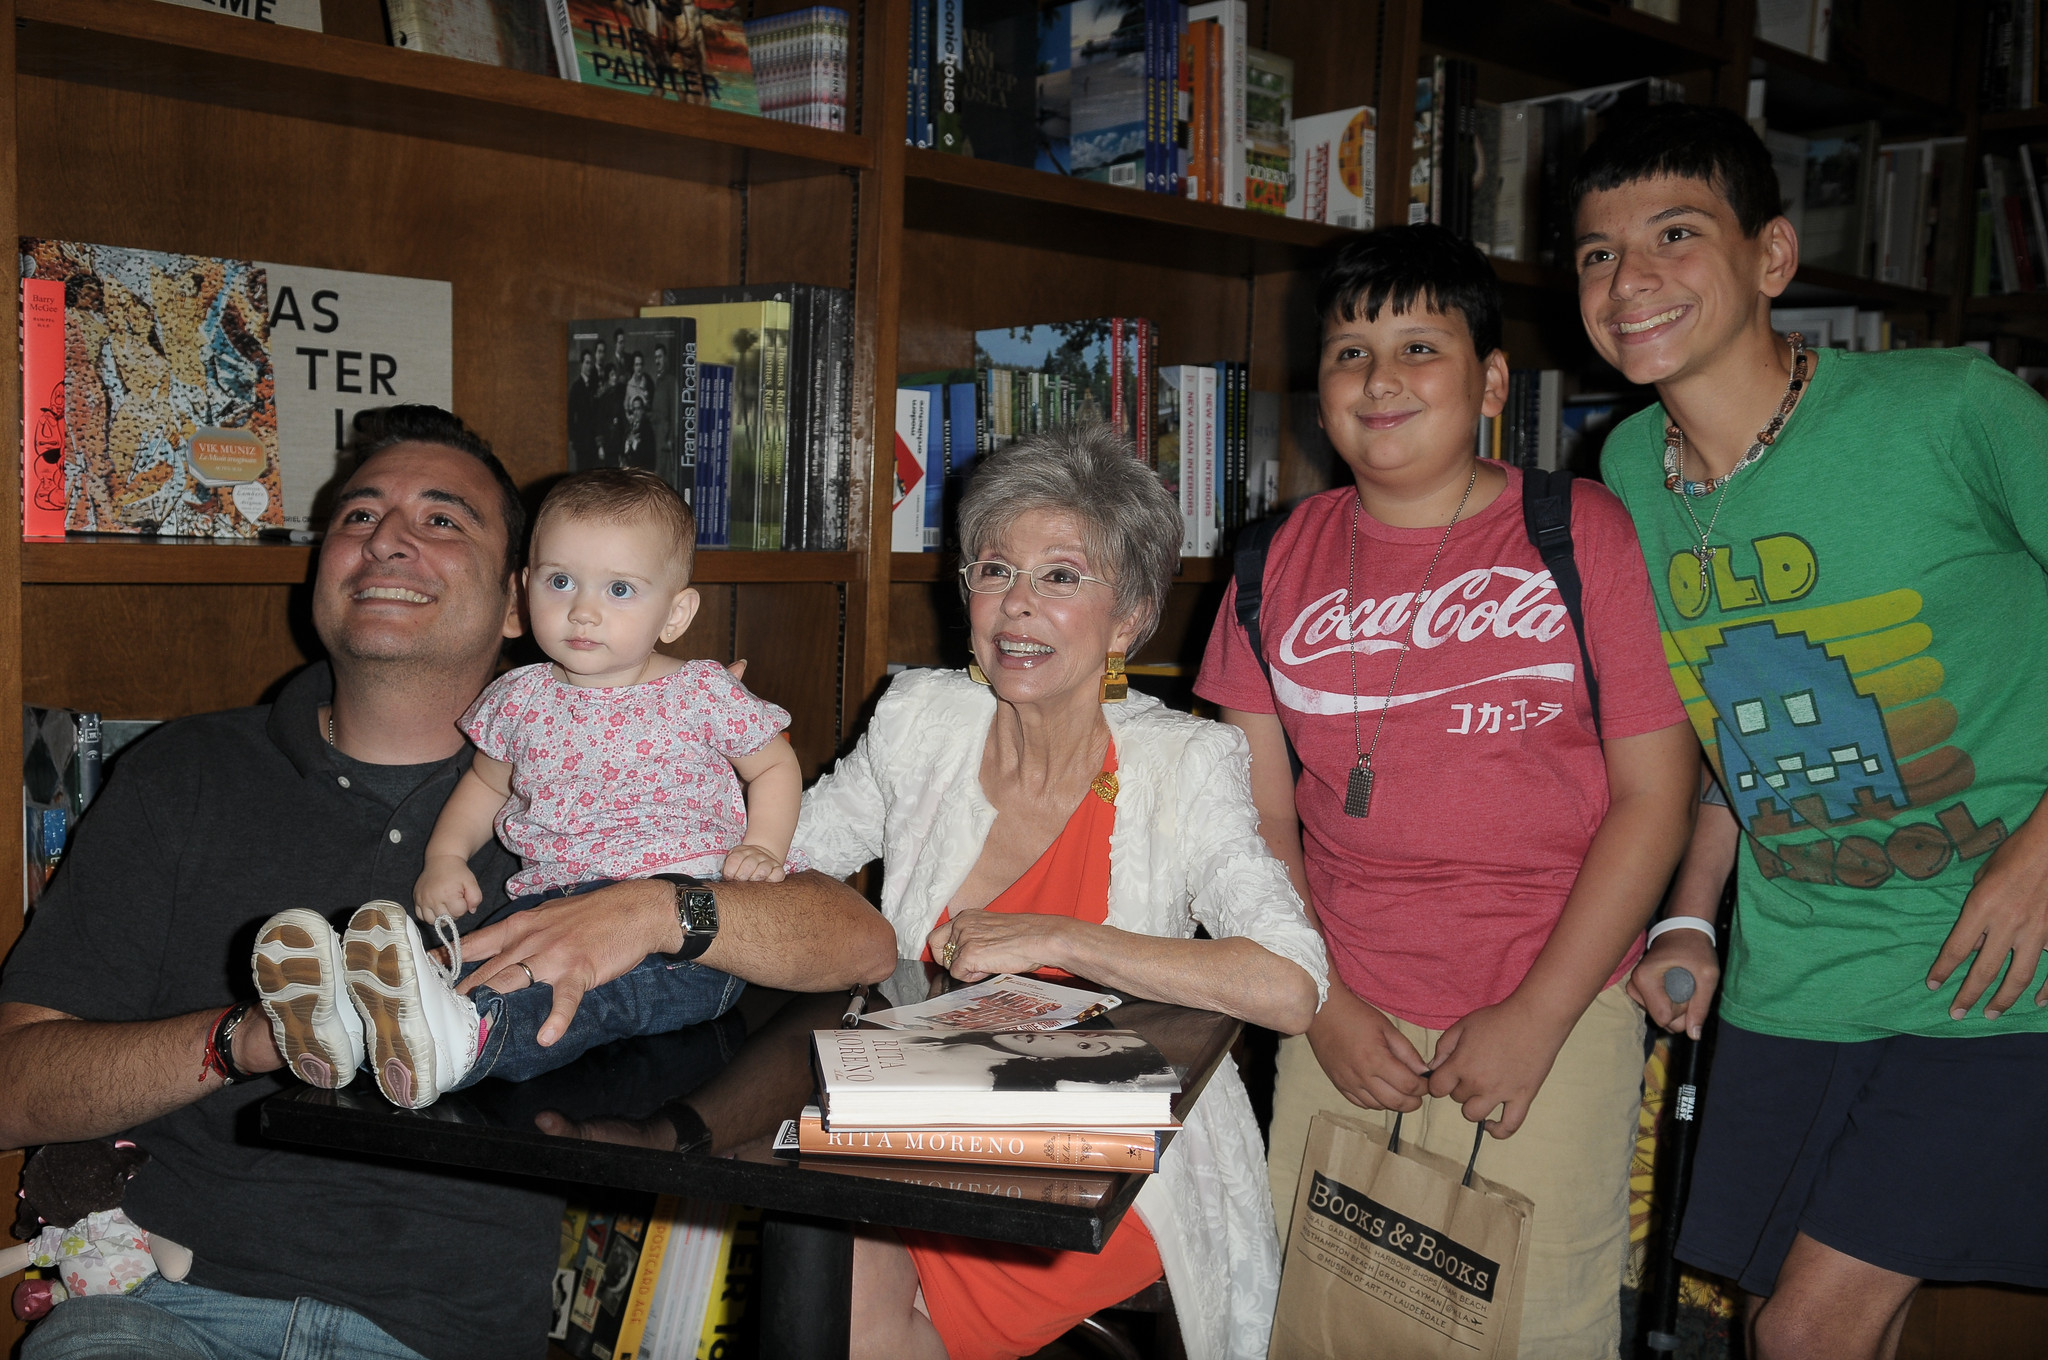 Celeb-spotting around South Florida - Rita Moreno Book Signing At Books And Books